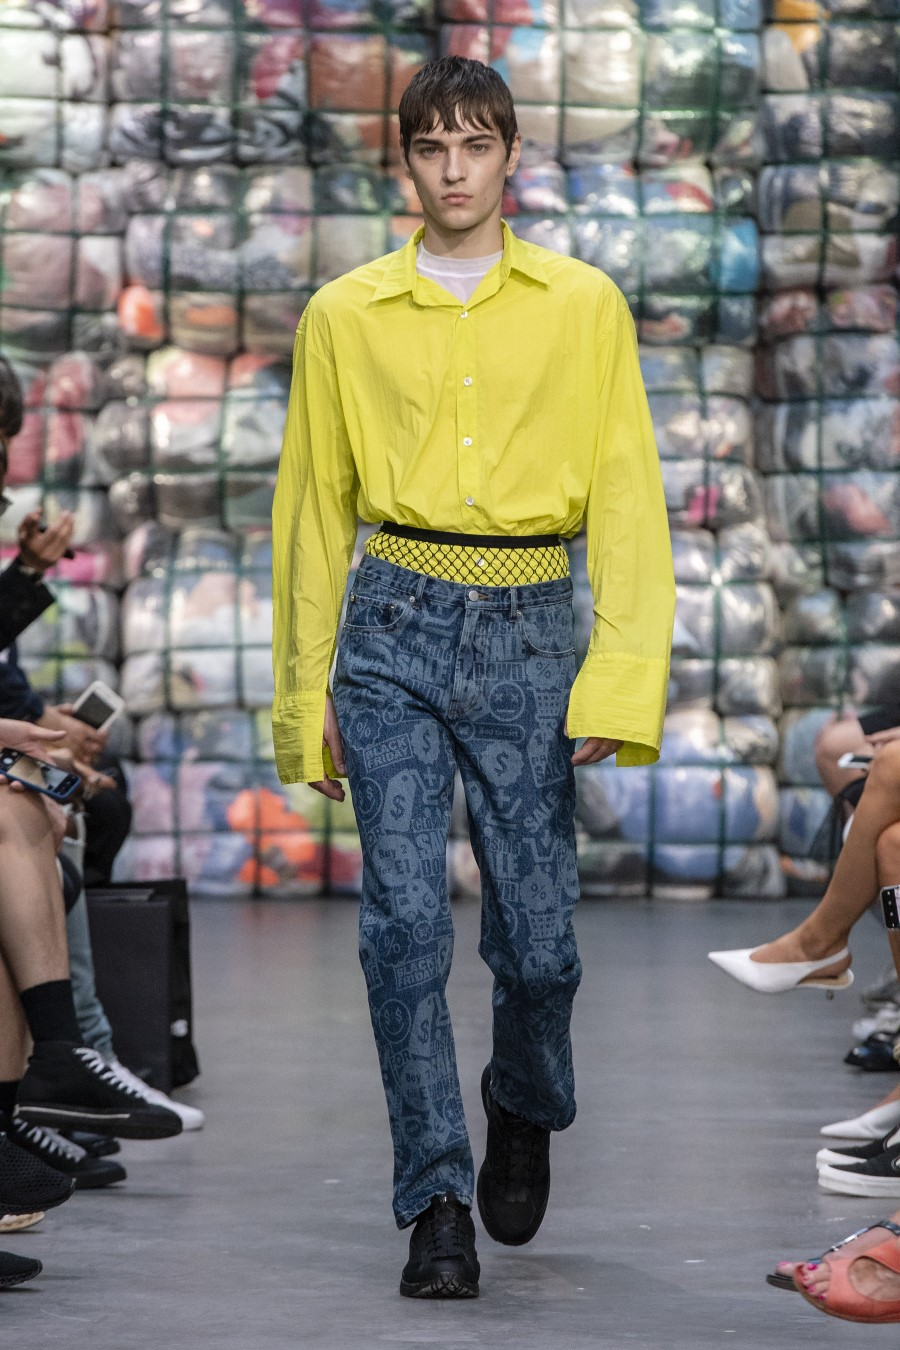 CMMN SWDN Spring Summer 2019 - Paris Fashion Week